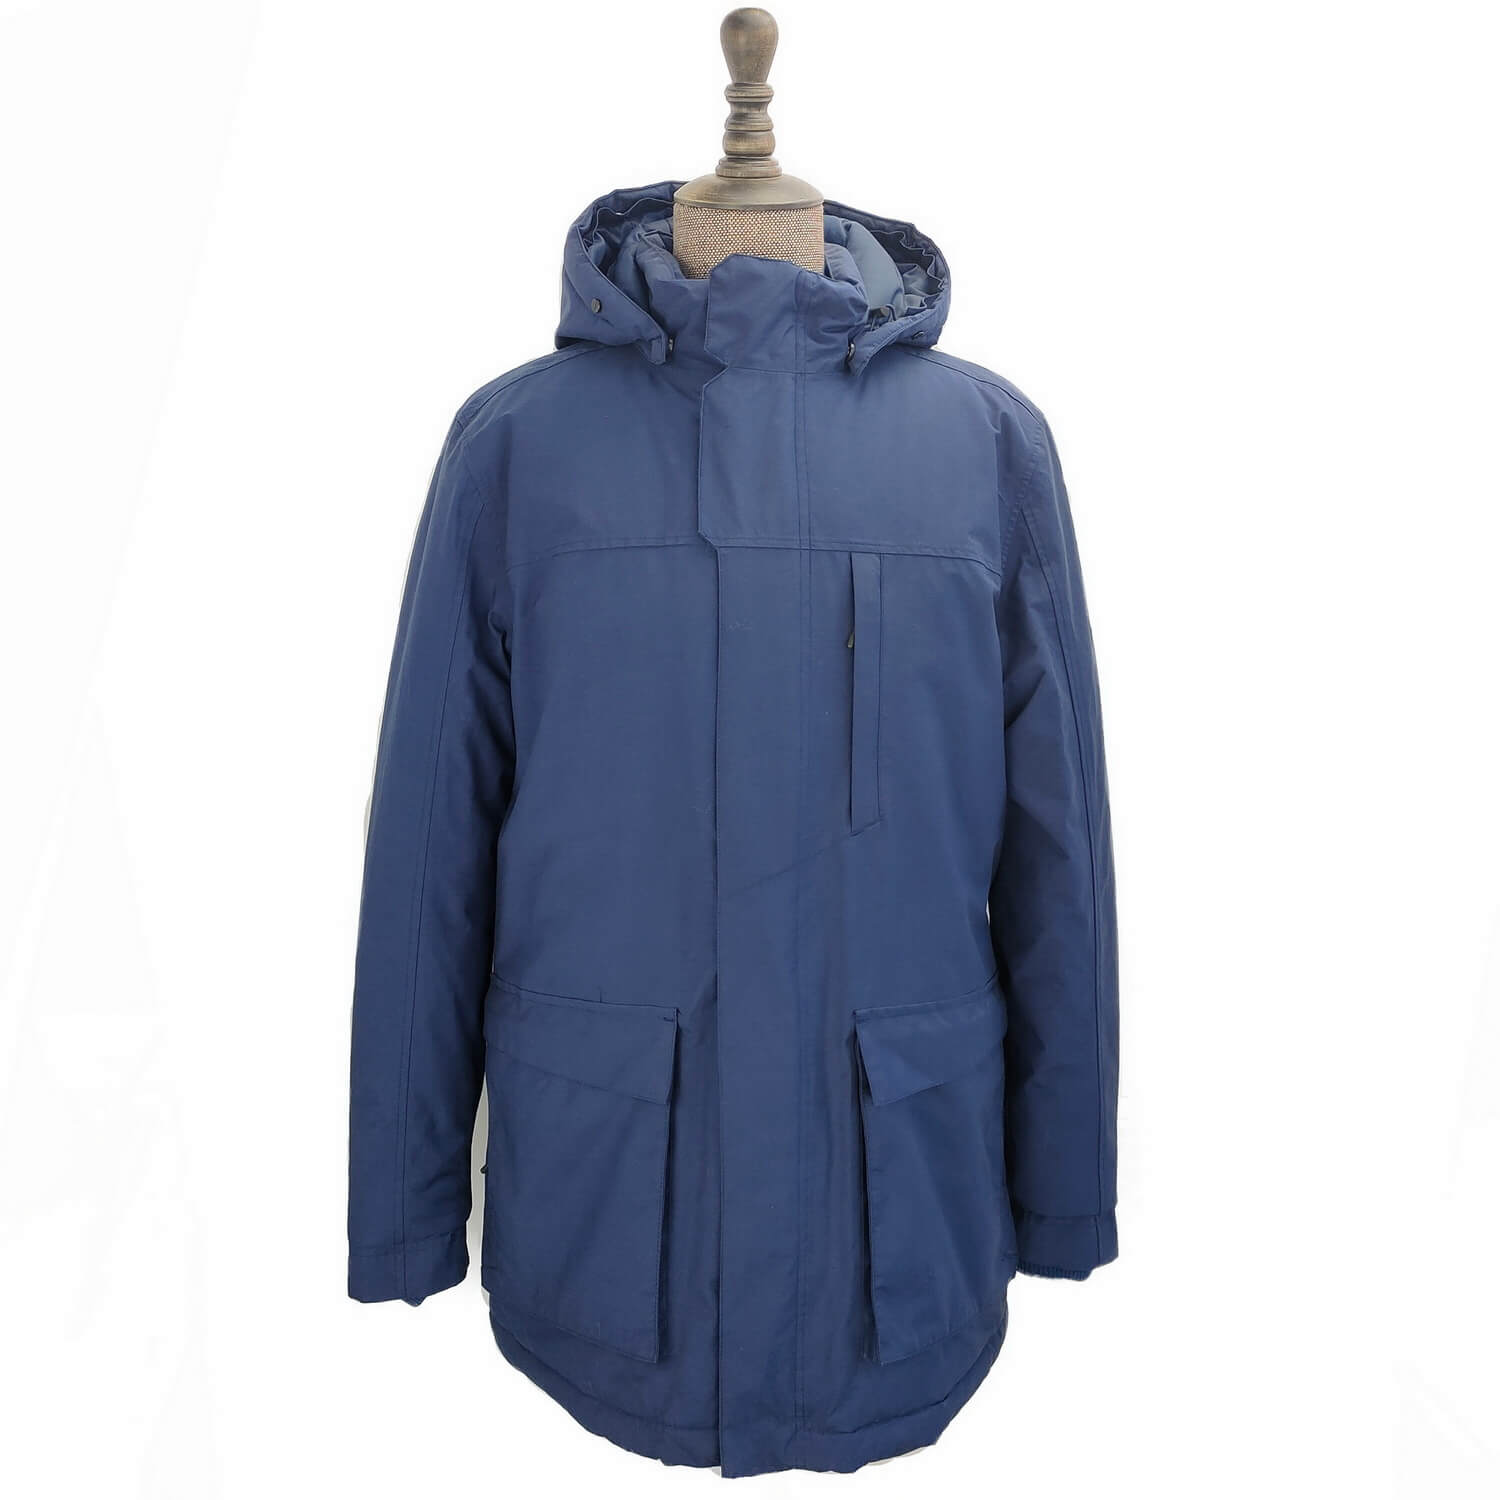 Men's Outdoor Jacket